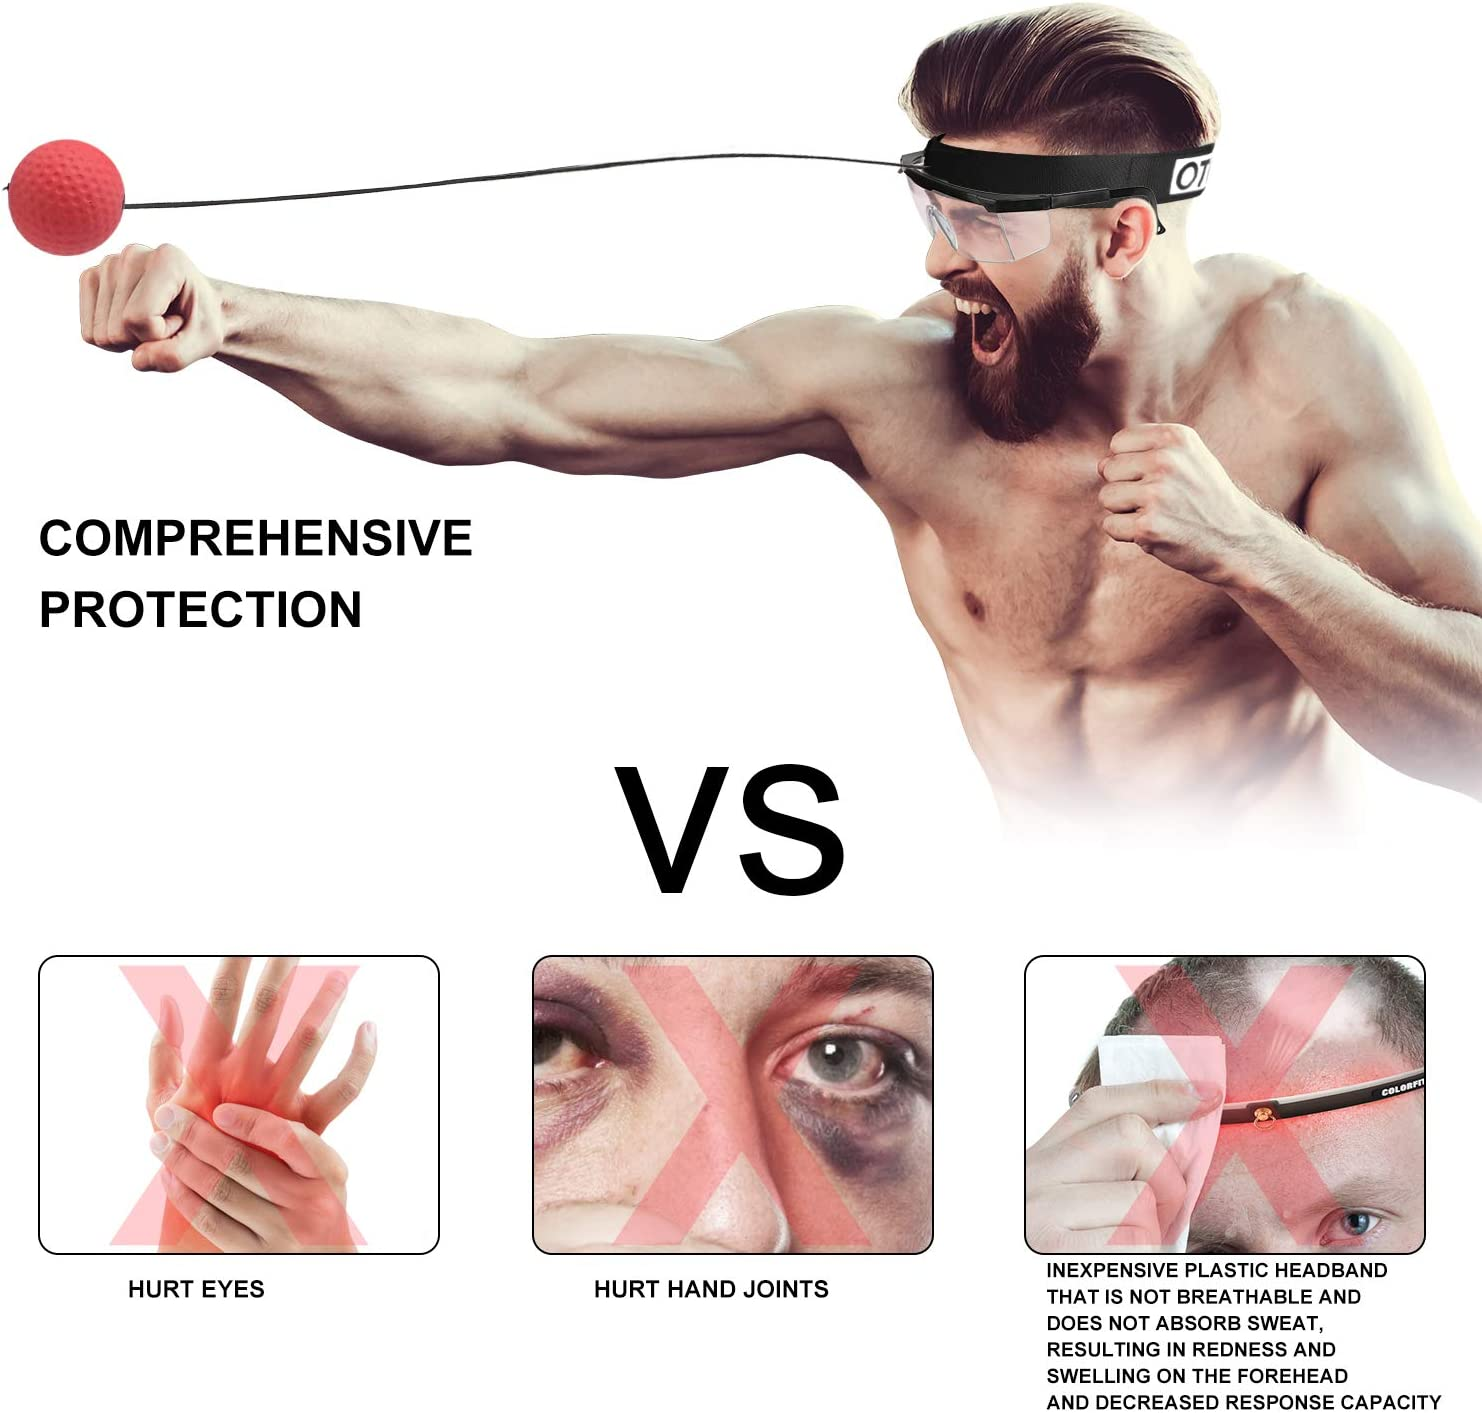 Boxing Training Ball OOTO Upgraded Boxing Reflex Ball Mma Speed Training Suitable for Adult//Kids Best Boxing Equipment for Training Hand Eye Coordination and Fitness.